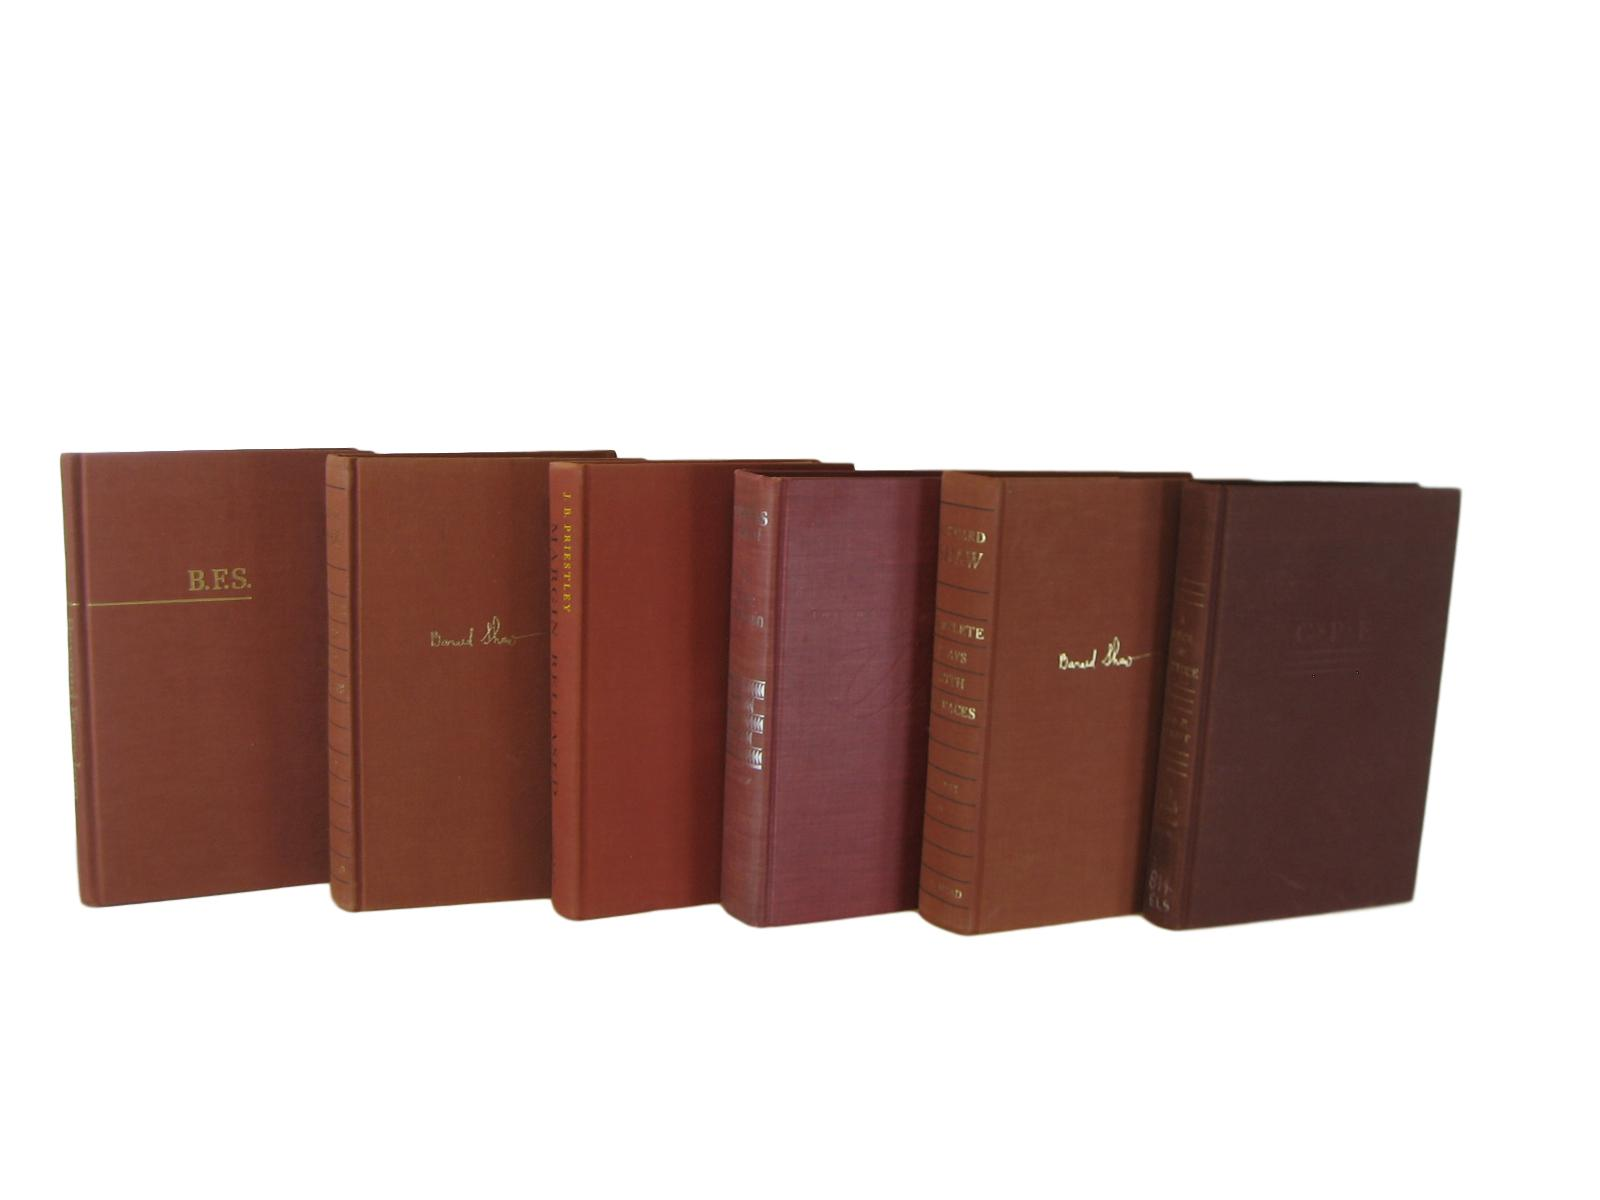 Rust Brown Vintage Decorative Books for Home Decor, S/6 - Decades of Vintage